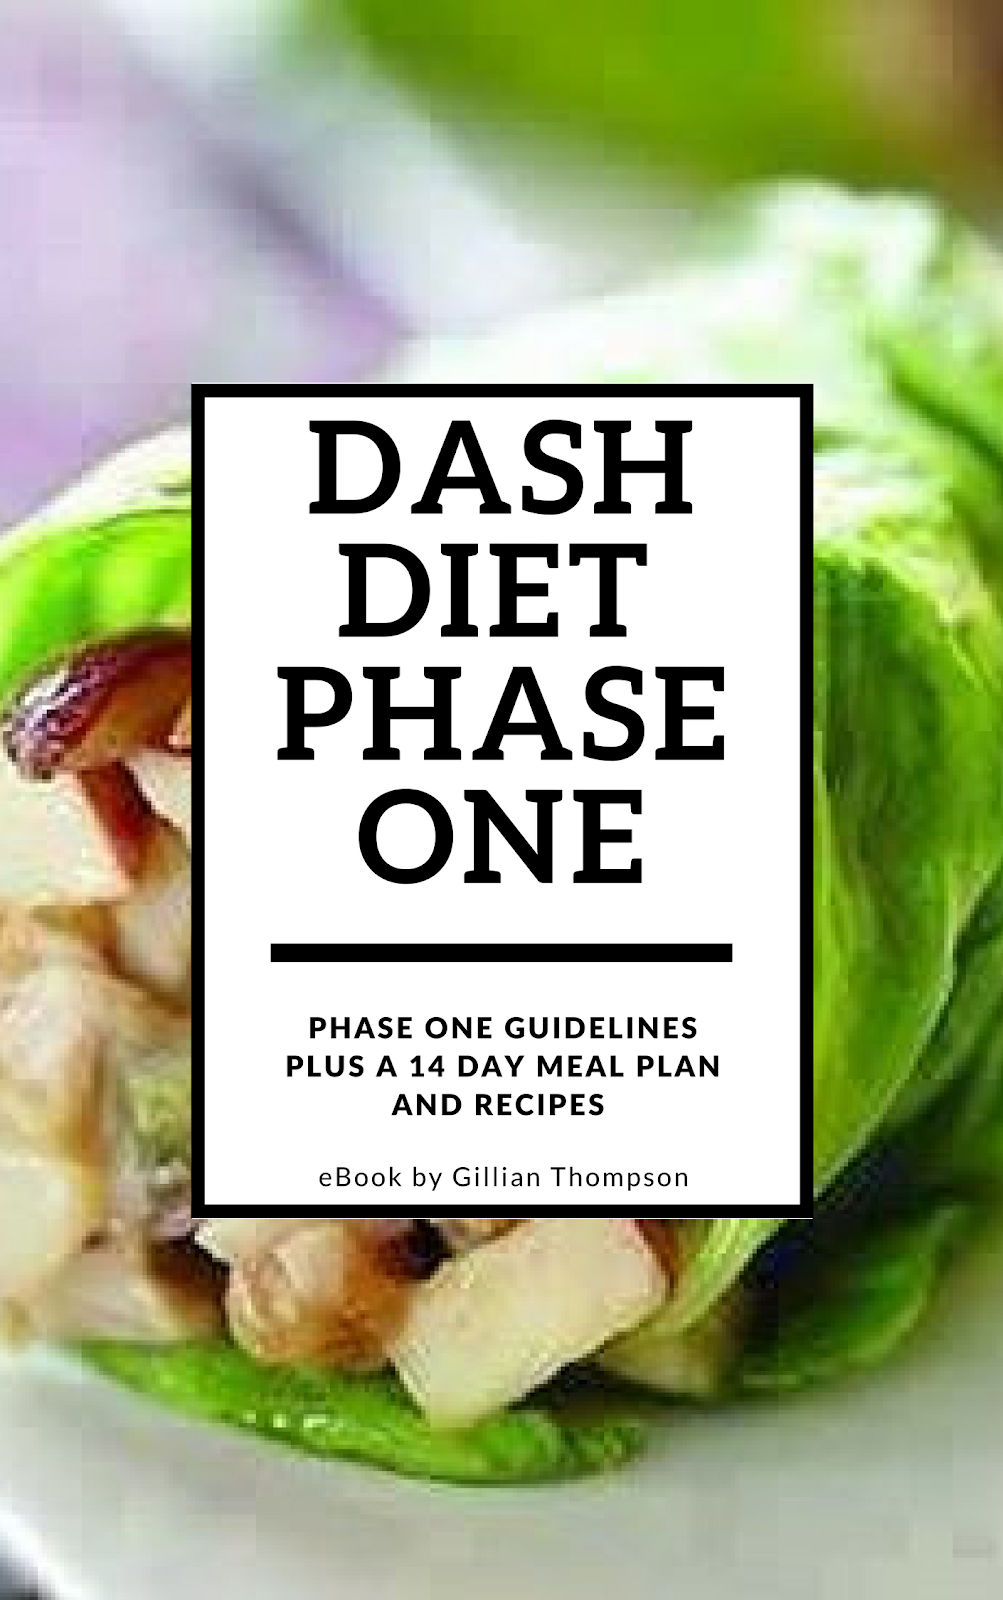 Phase 1 Recipes + 14 Day Meal Plan